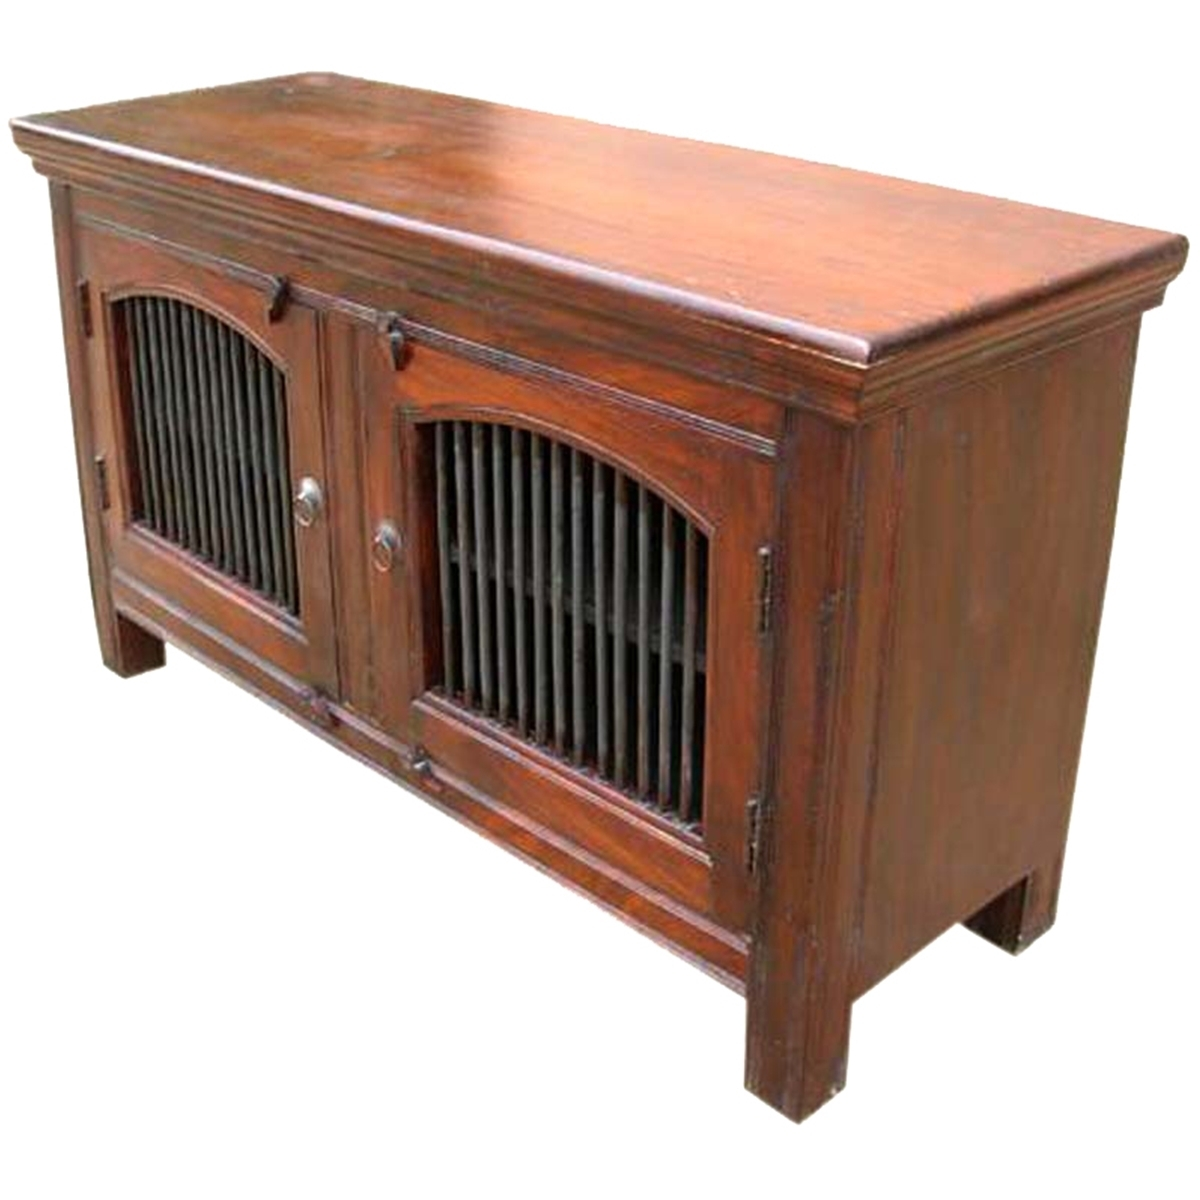 Wade Solid Wood 2 Wrought Iron Door Buffet Cabinet within Black Oak Wood And Wrought Iron Sideboards (Image 30 of 30)